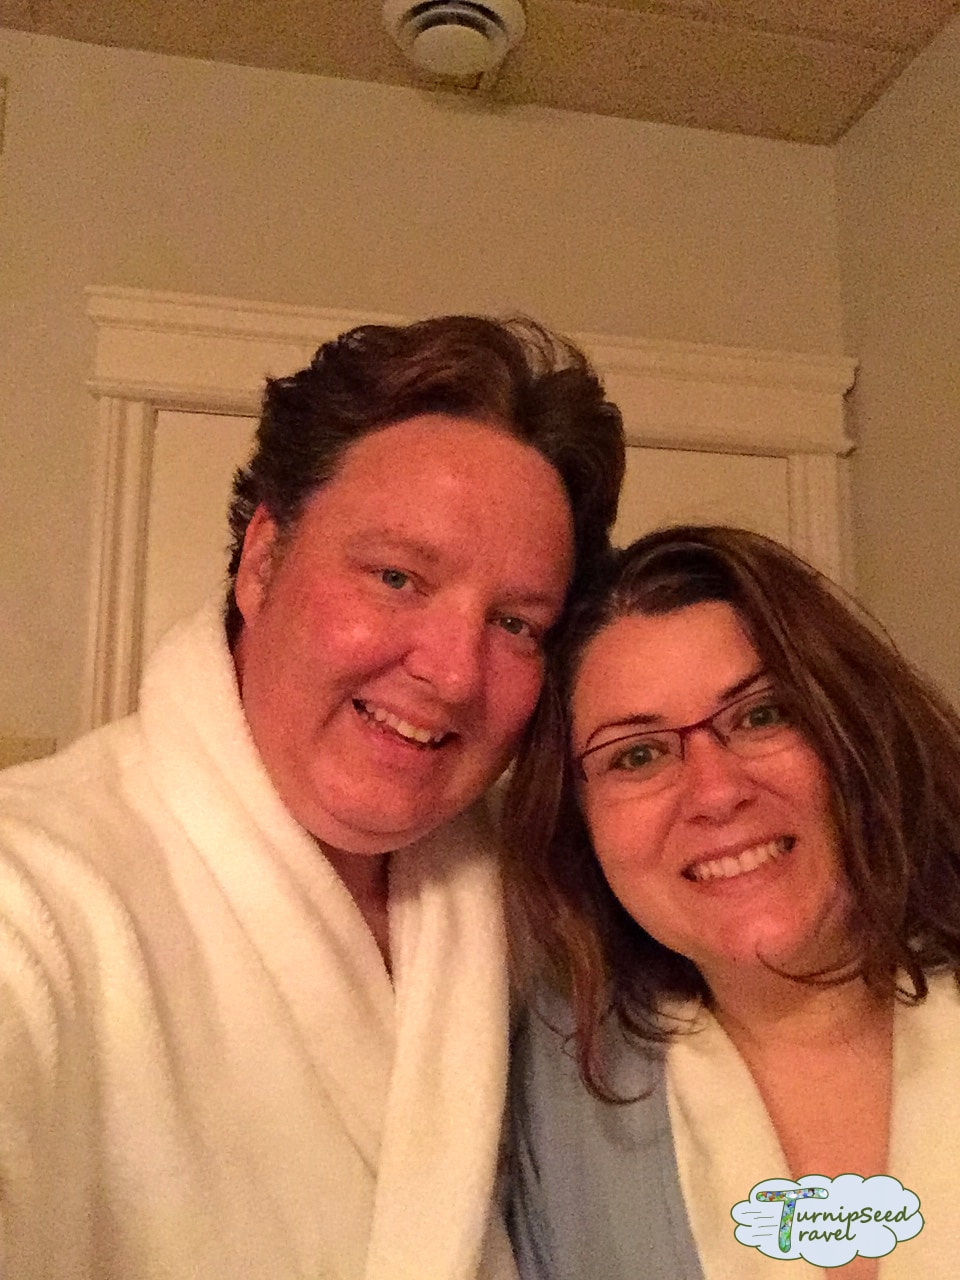 Mahogany salon and spa Carleton Place posing in bathrobes Picture